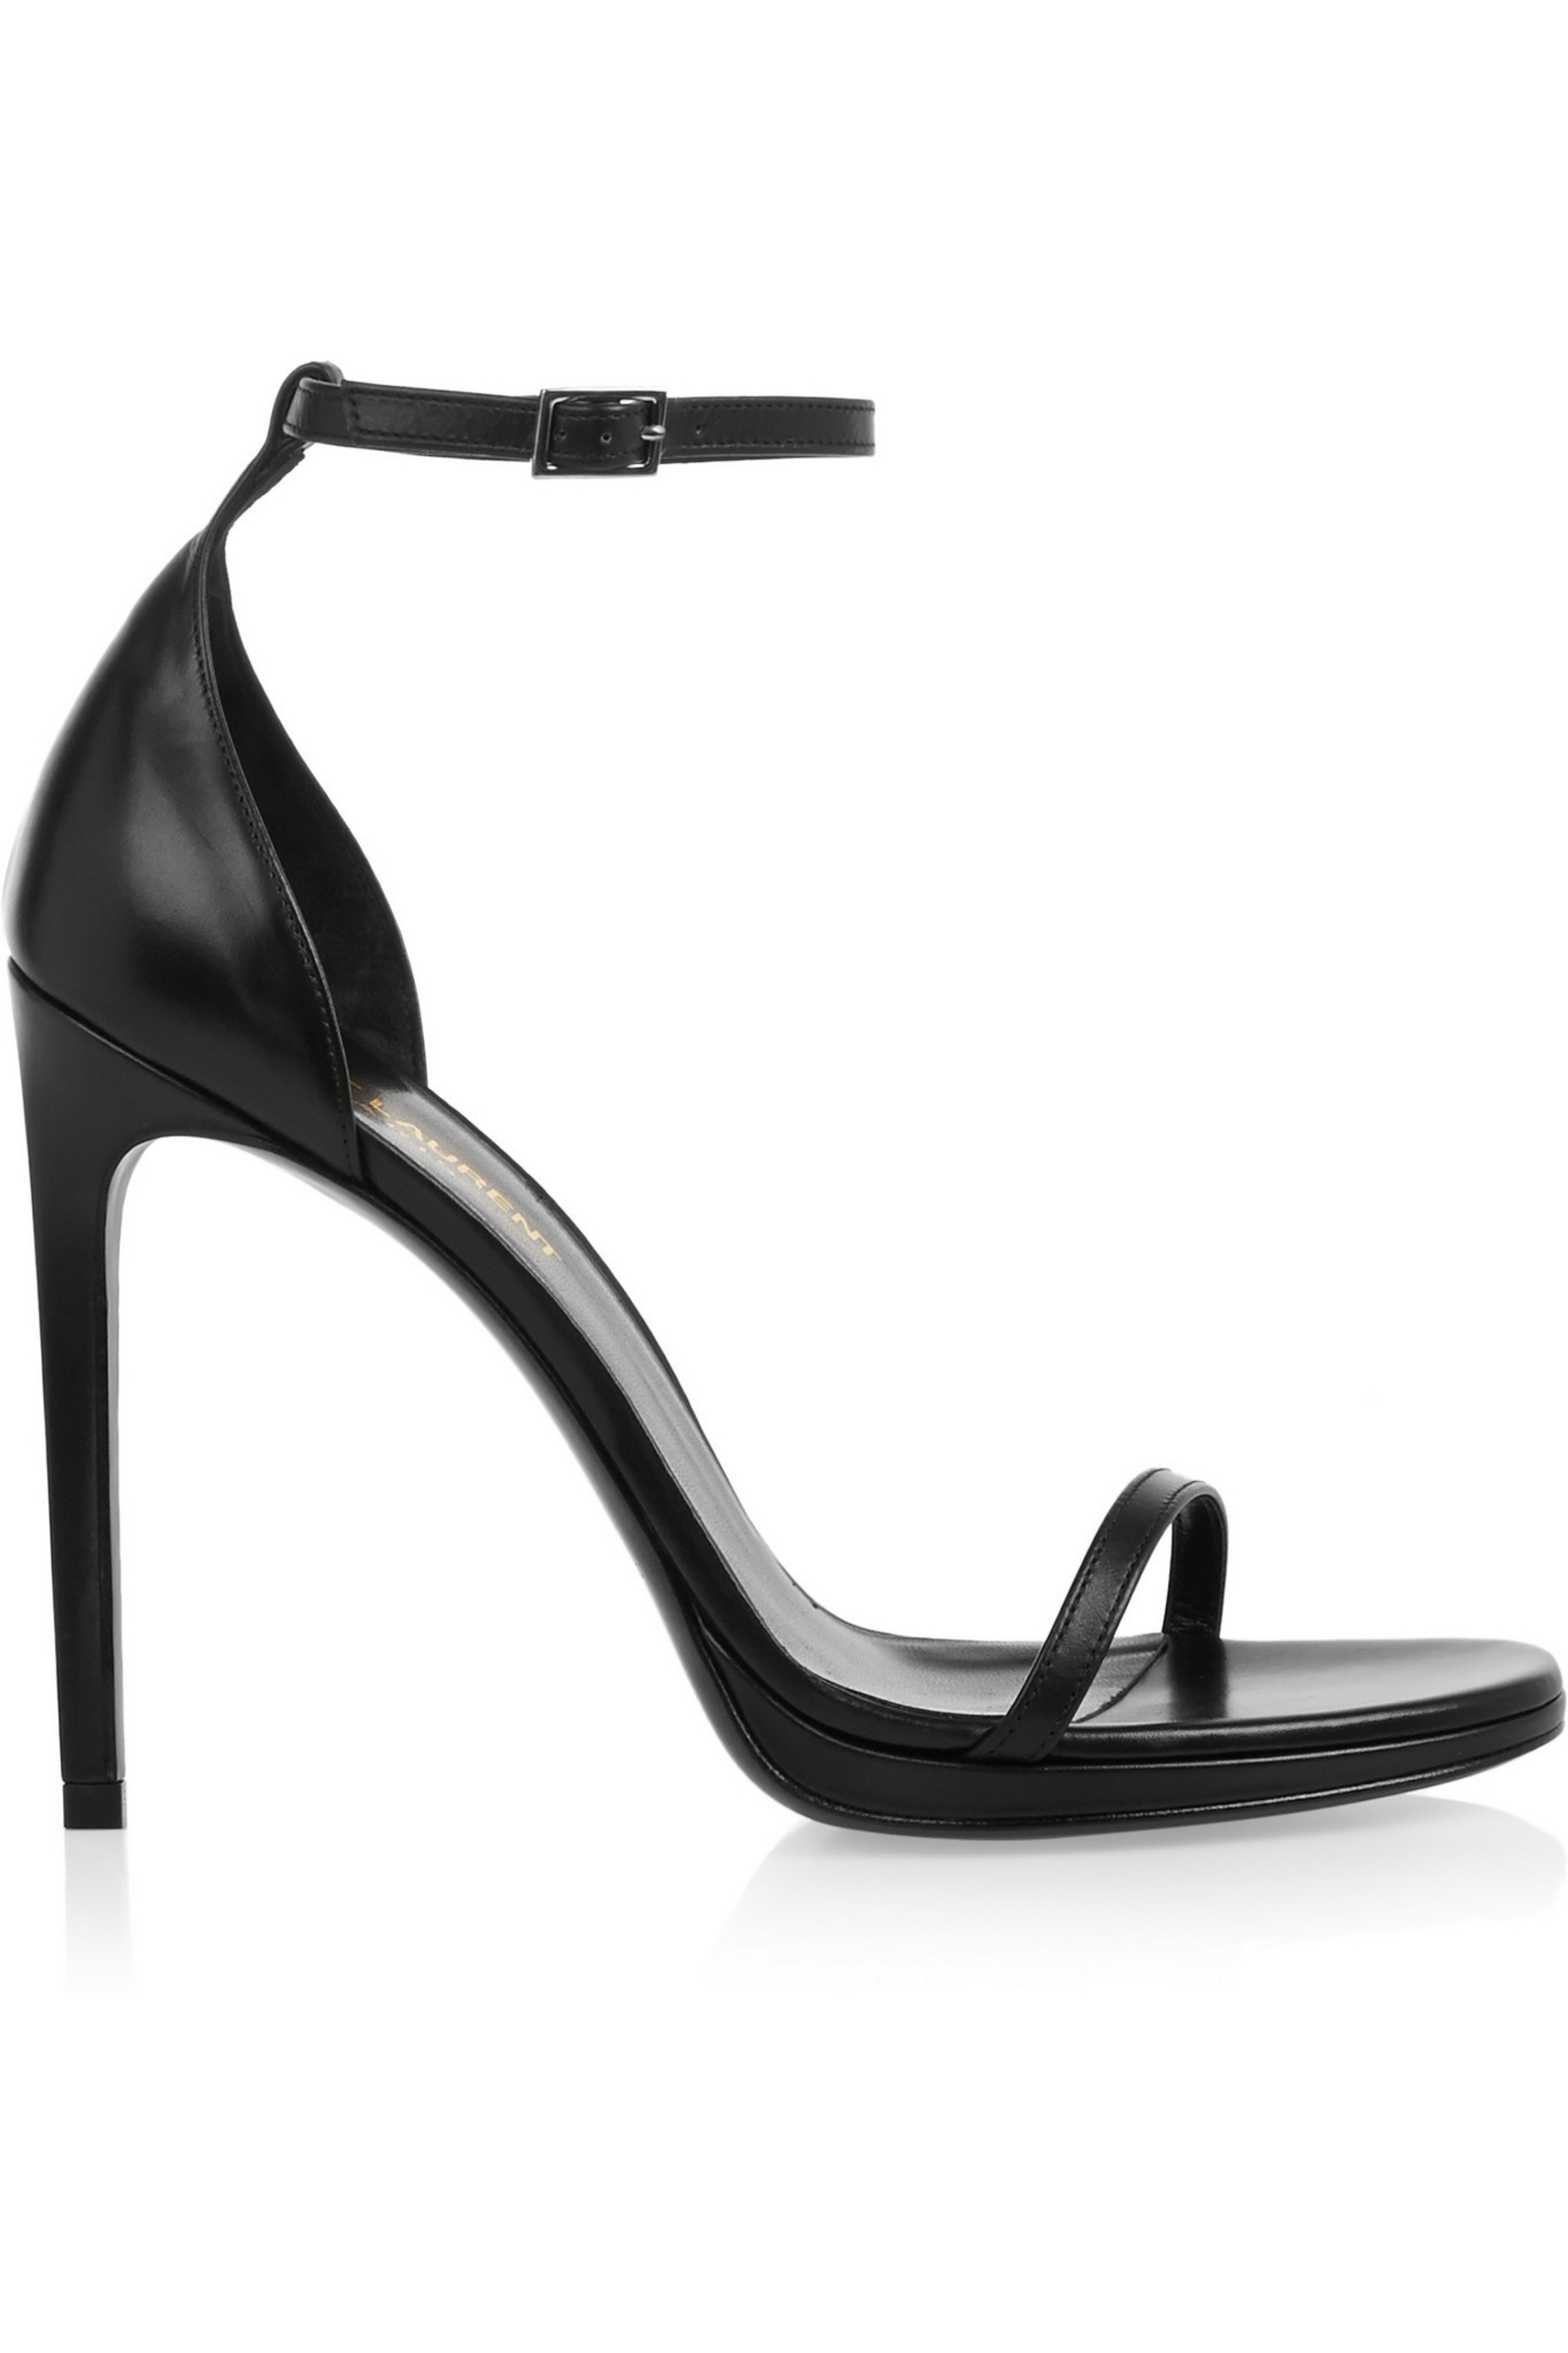 SAINT LAURENT Jane leather sandals